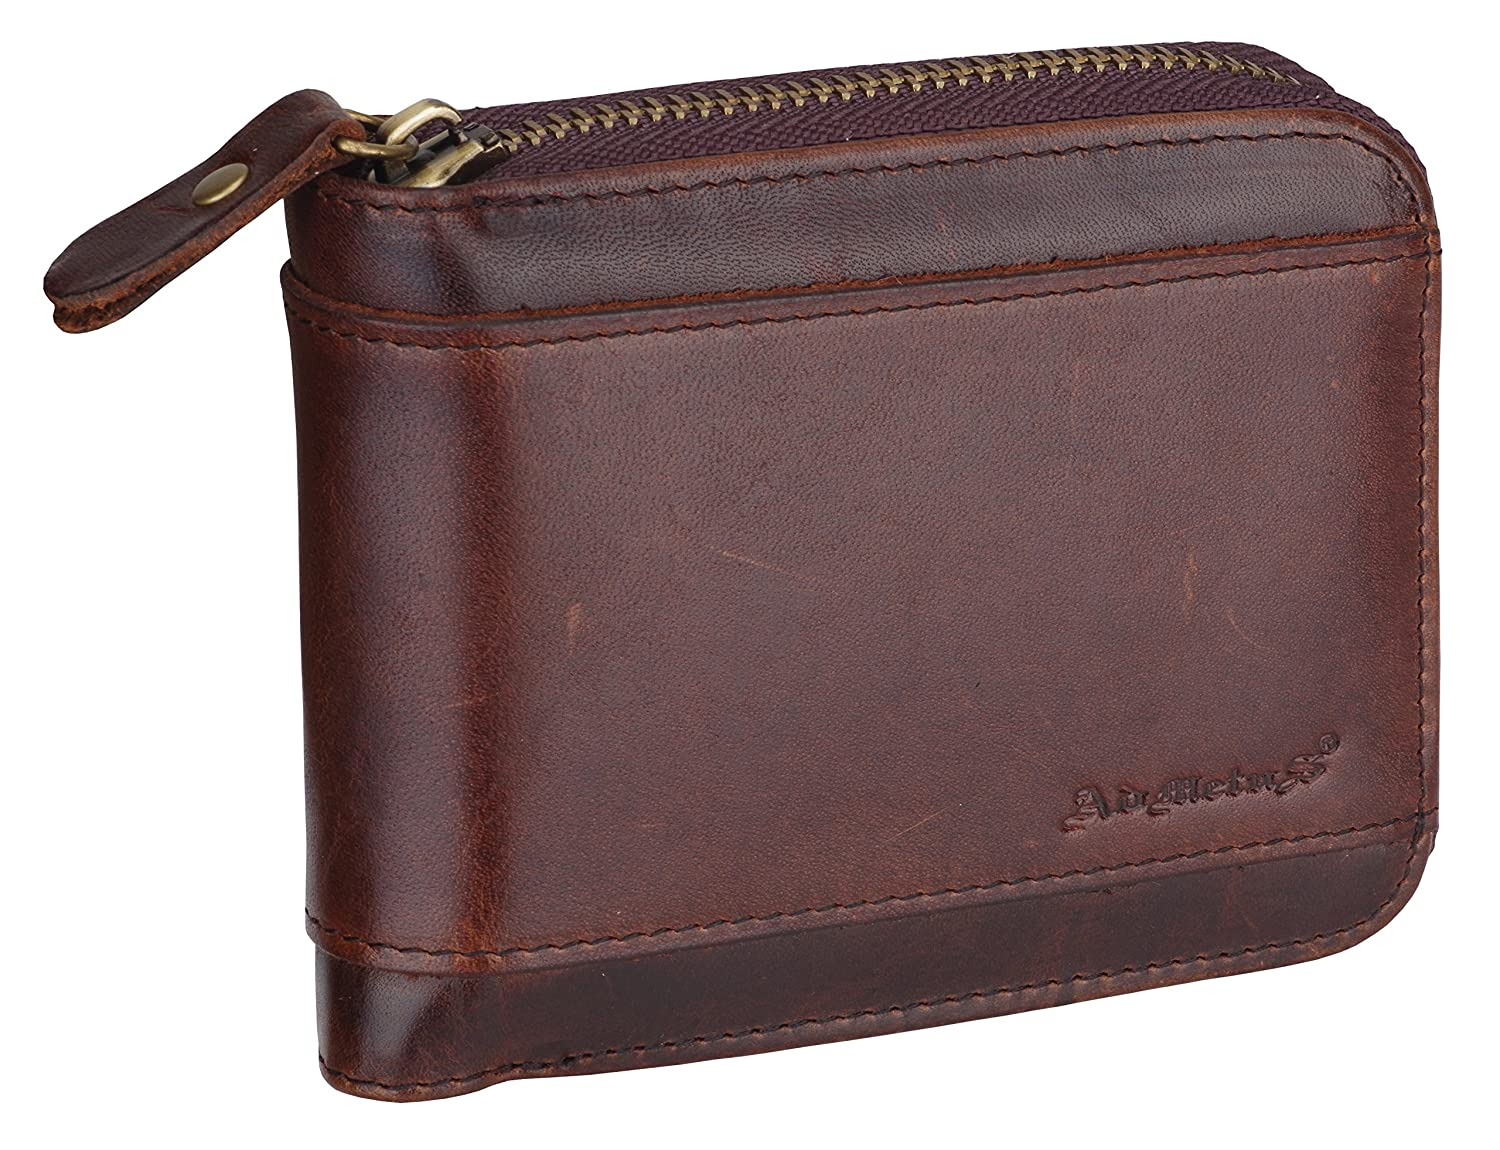 Admetus Men's Genuine Leather Short Zip-around Bifold Wallet AD-201-HE-H